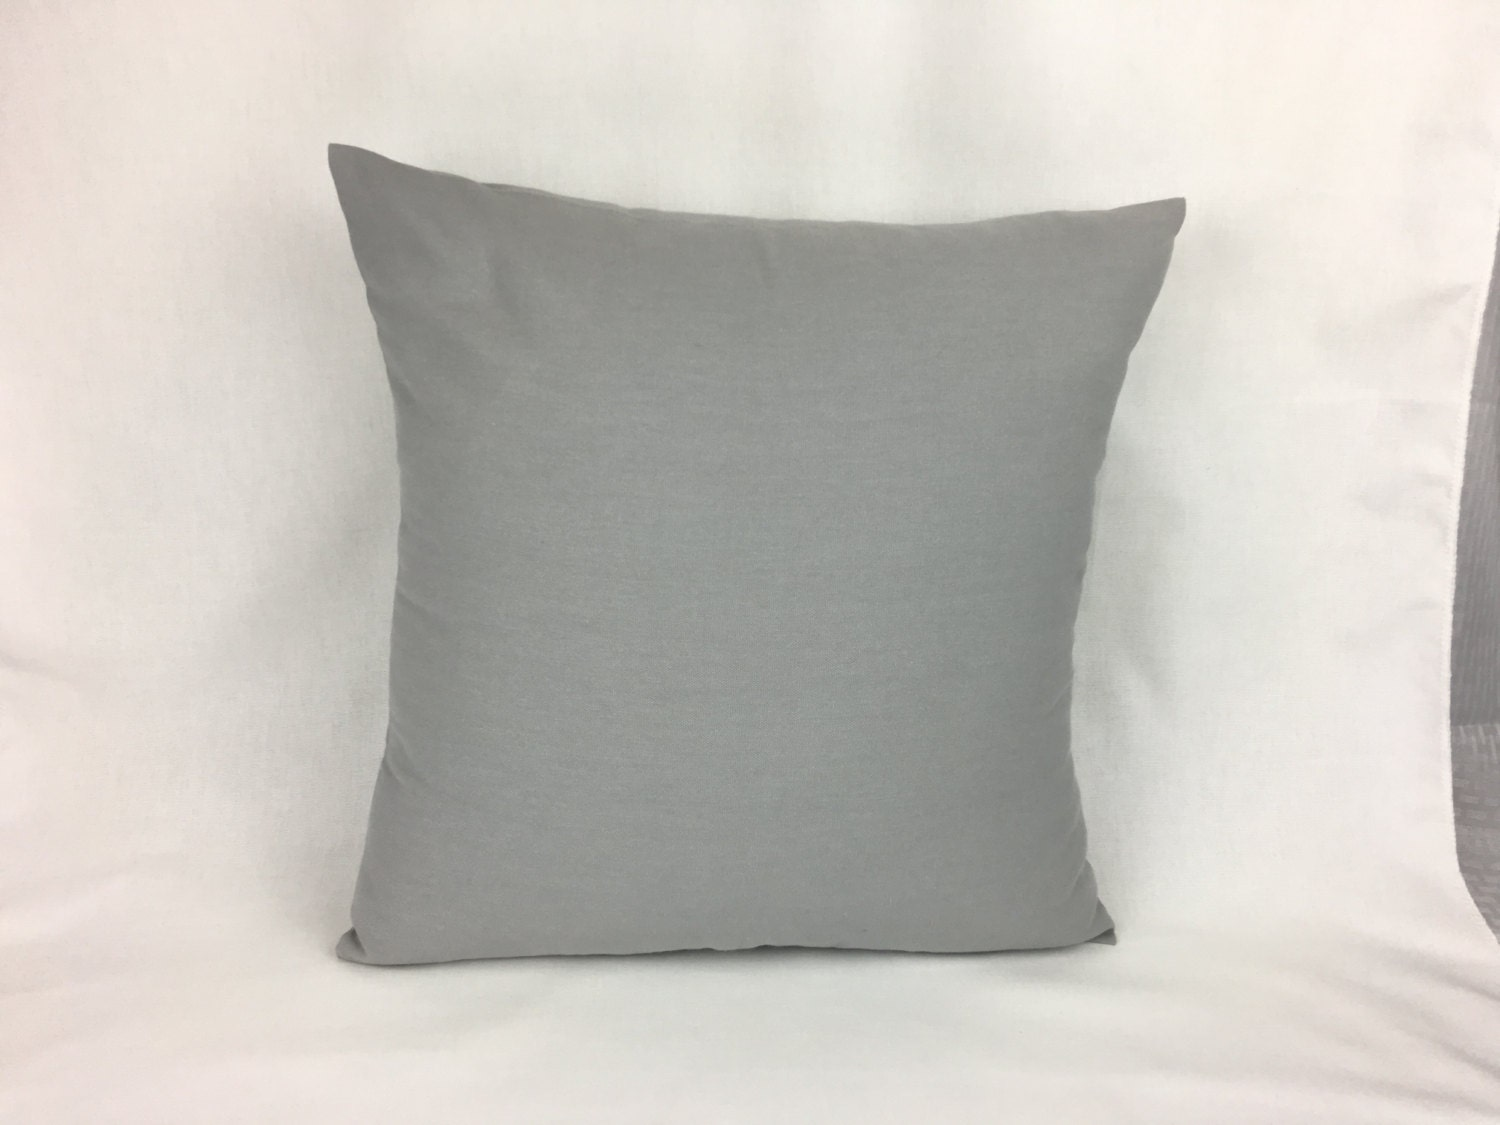 Grey Couch Pillows.Living Room Ideas Grey Couch With Upholstered E. Bedroom Furniture. Bright ...